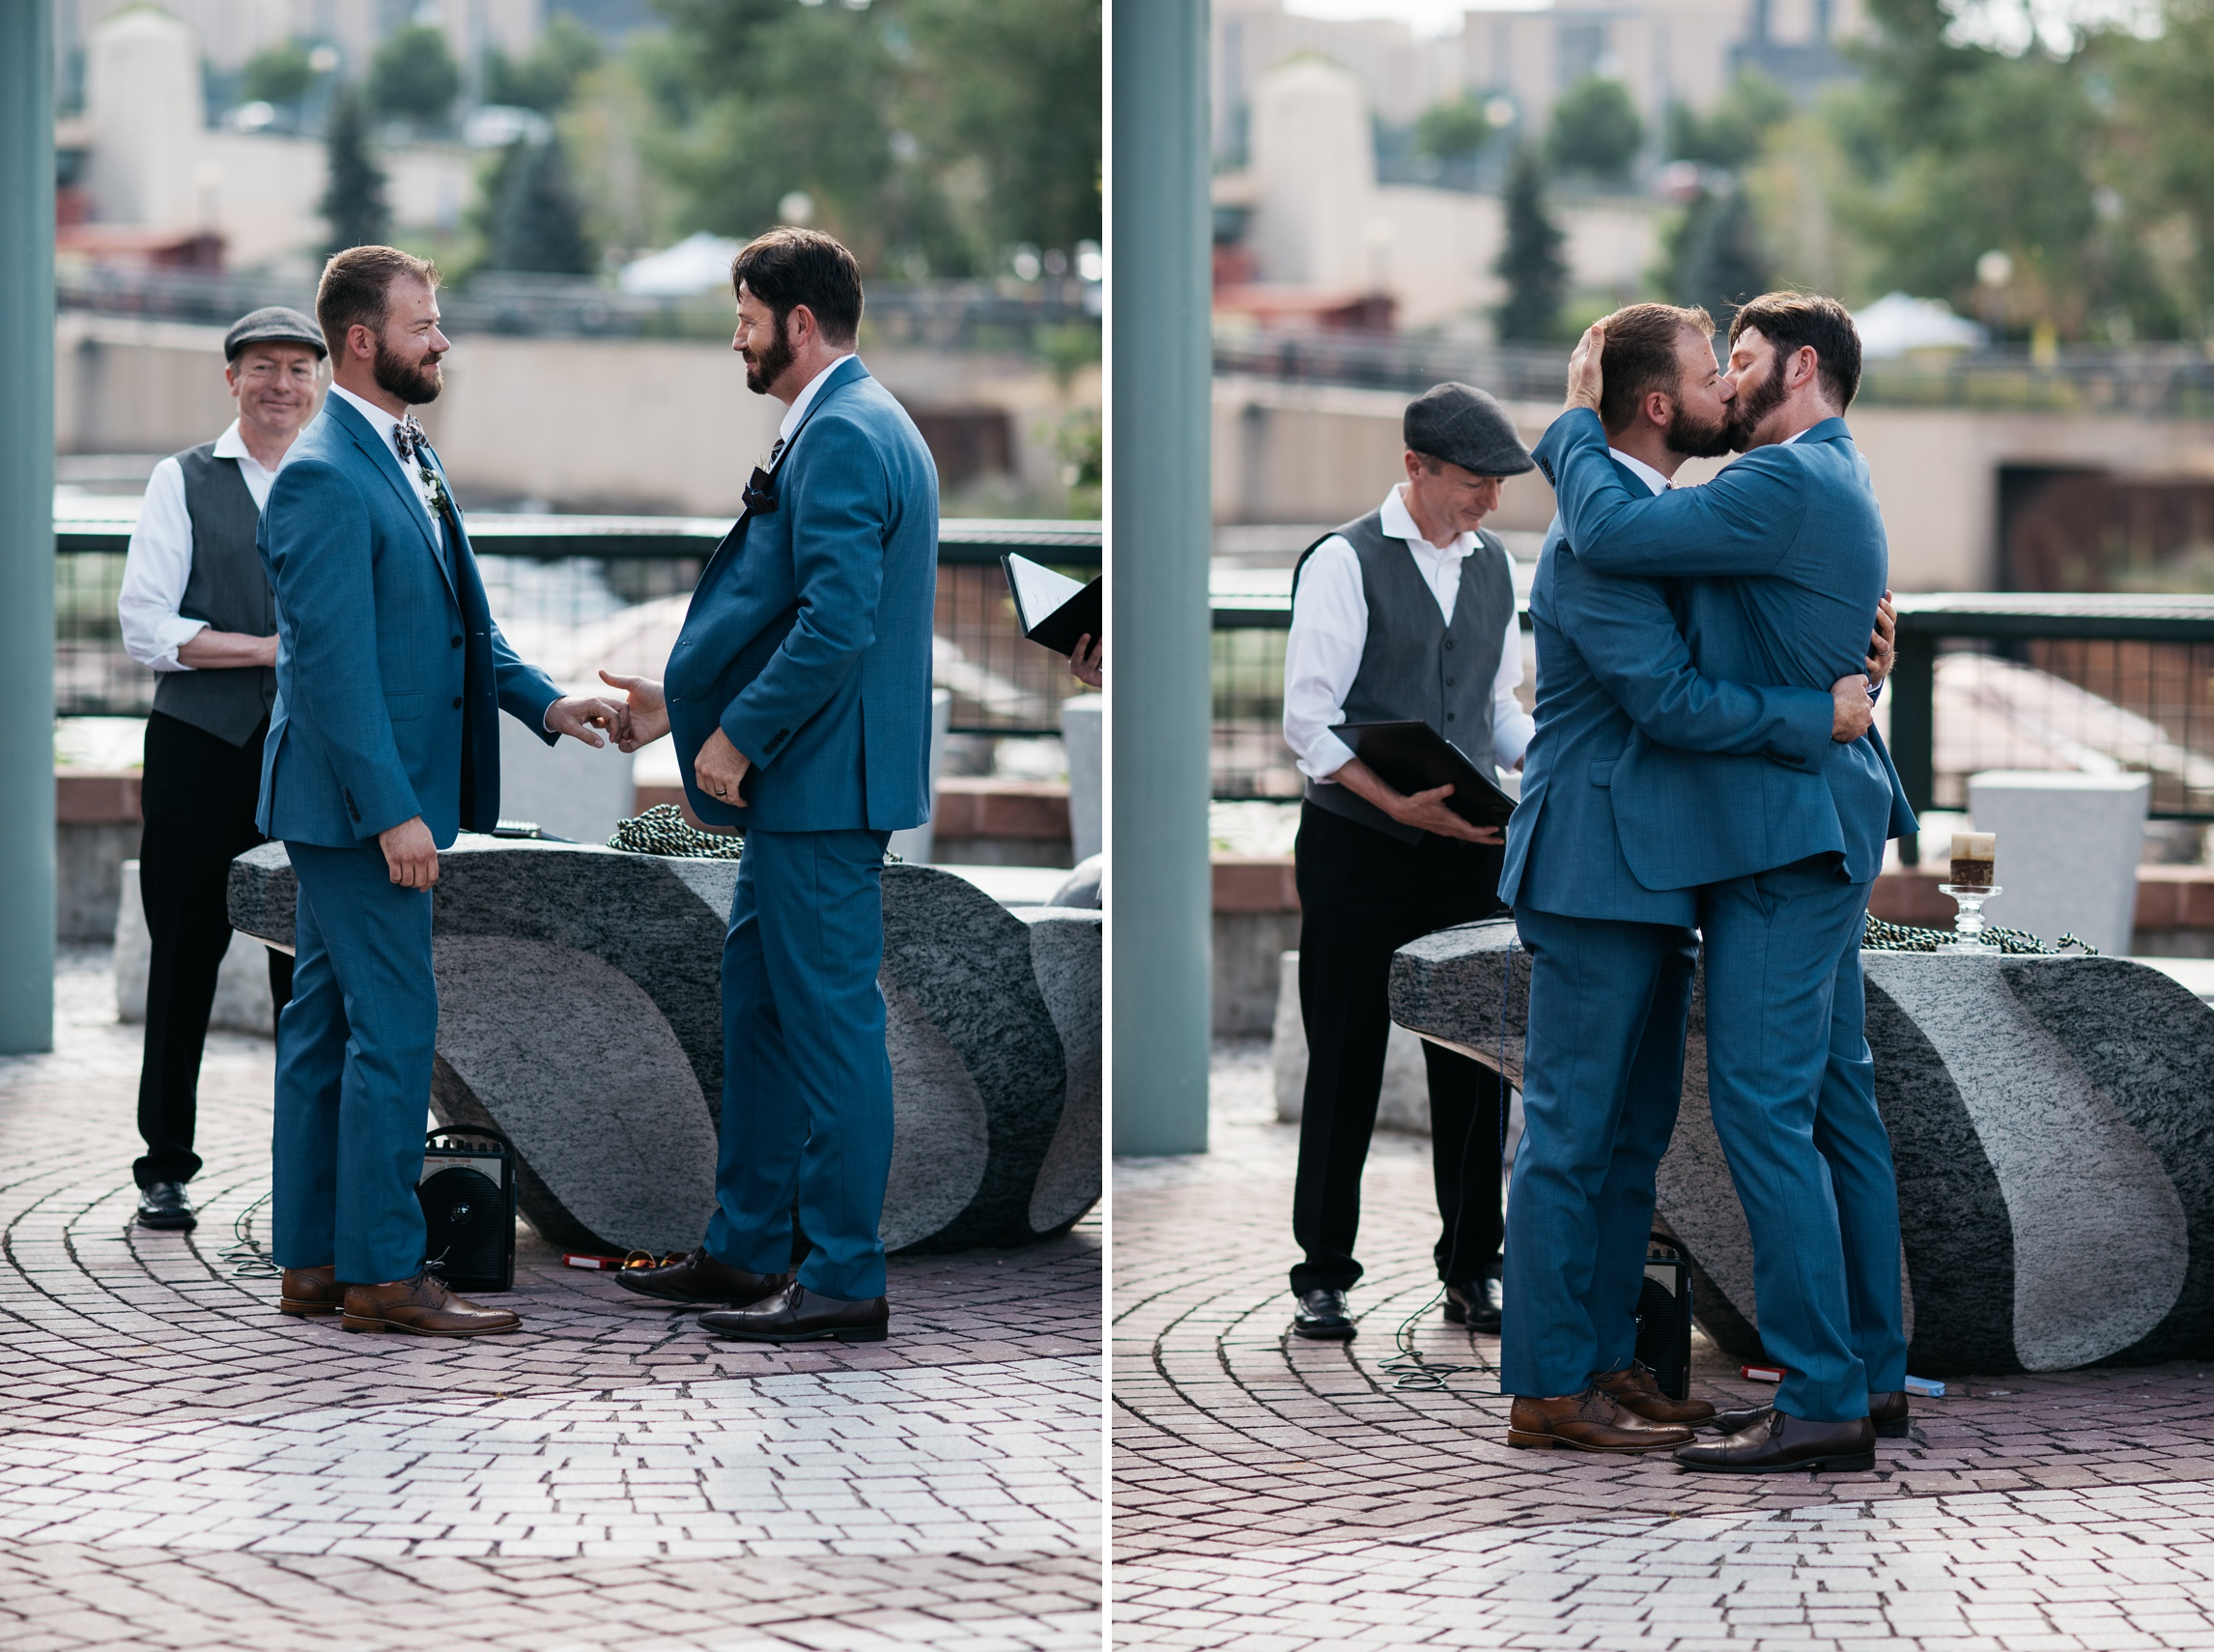 Weston and Karl are married in downtown Denver, Colorado. Gay wedding photography by Sonja Salzburg of Sonja K Photography.